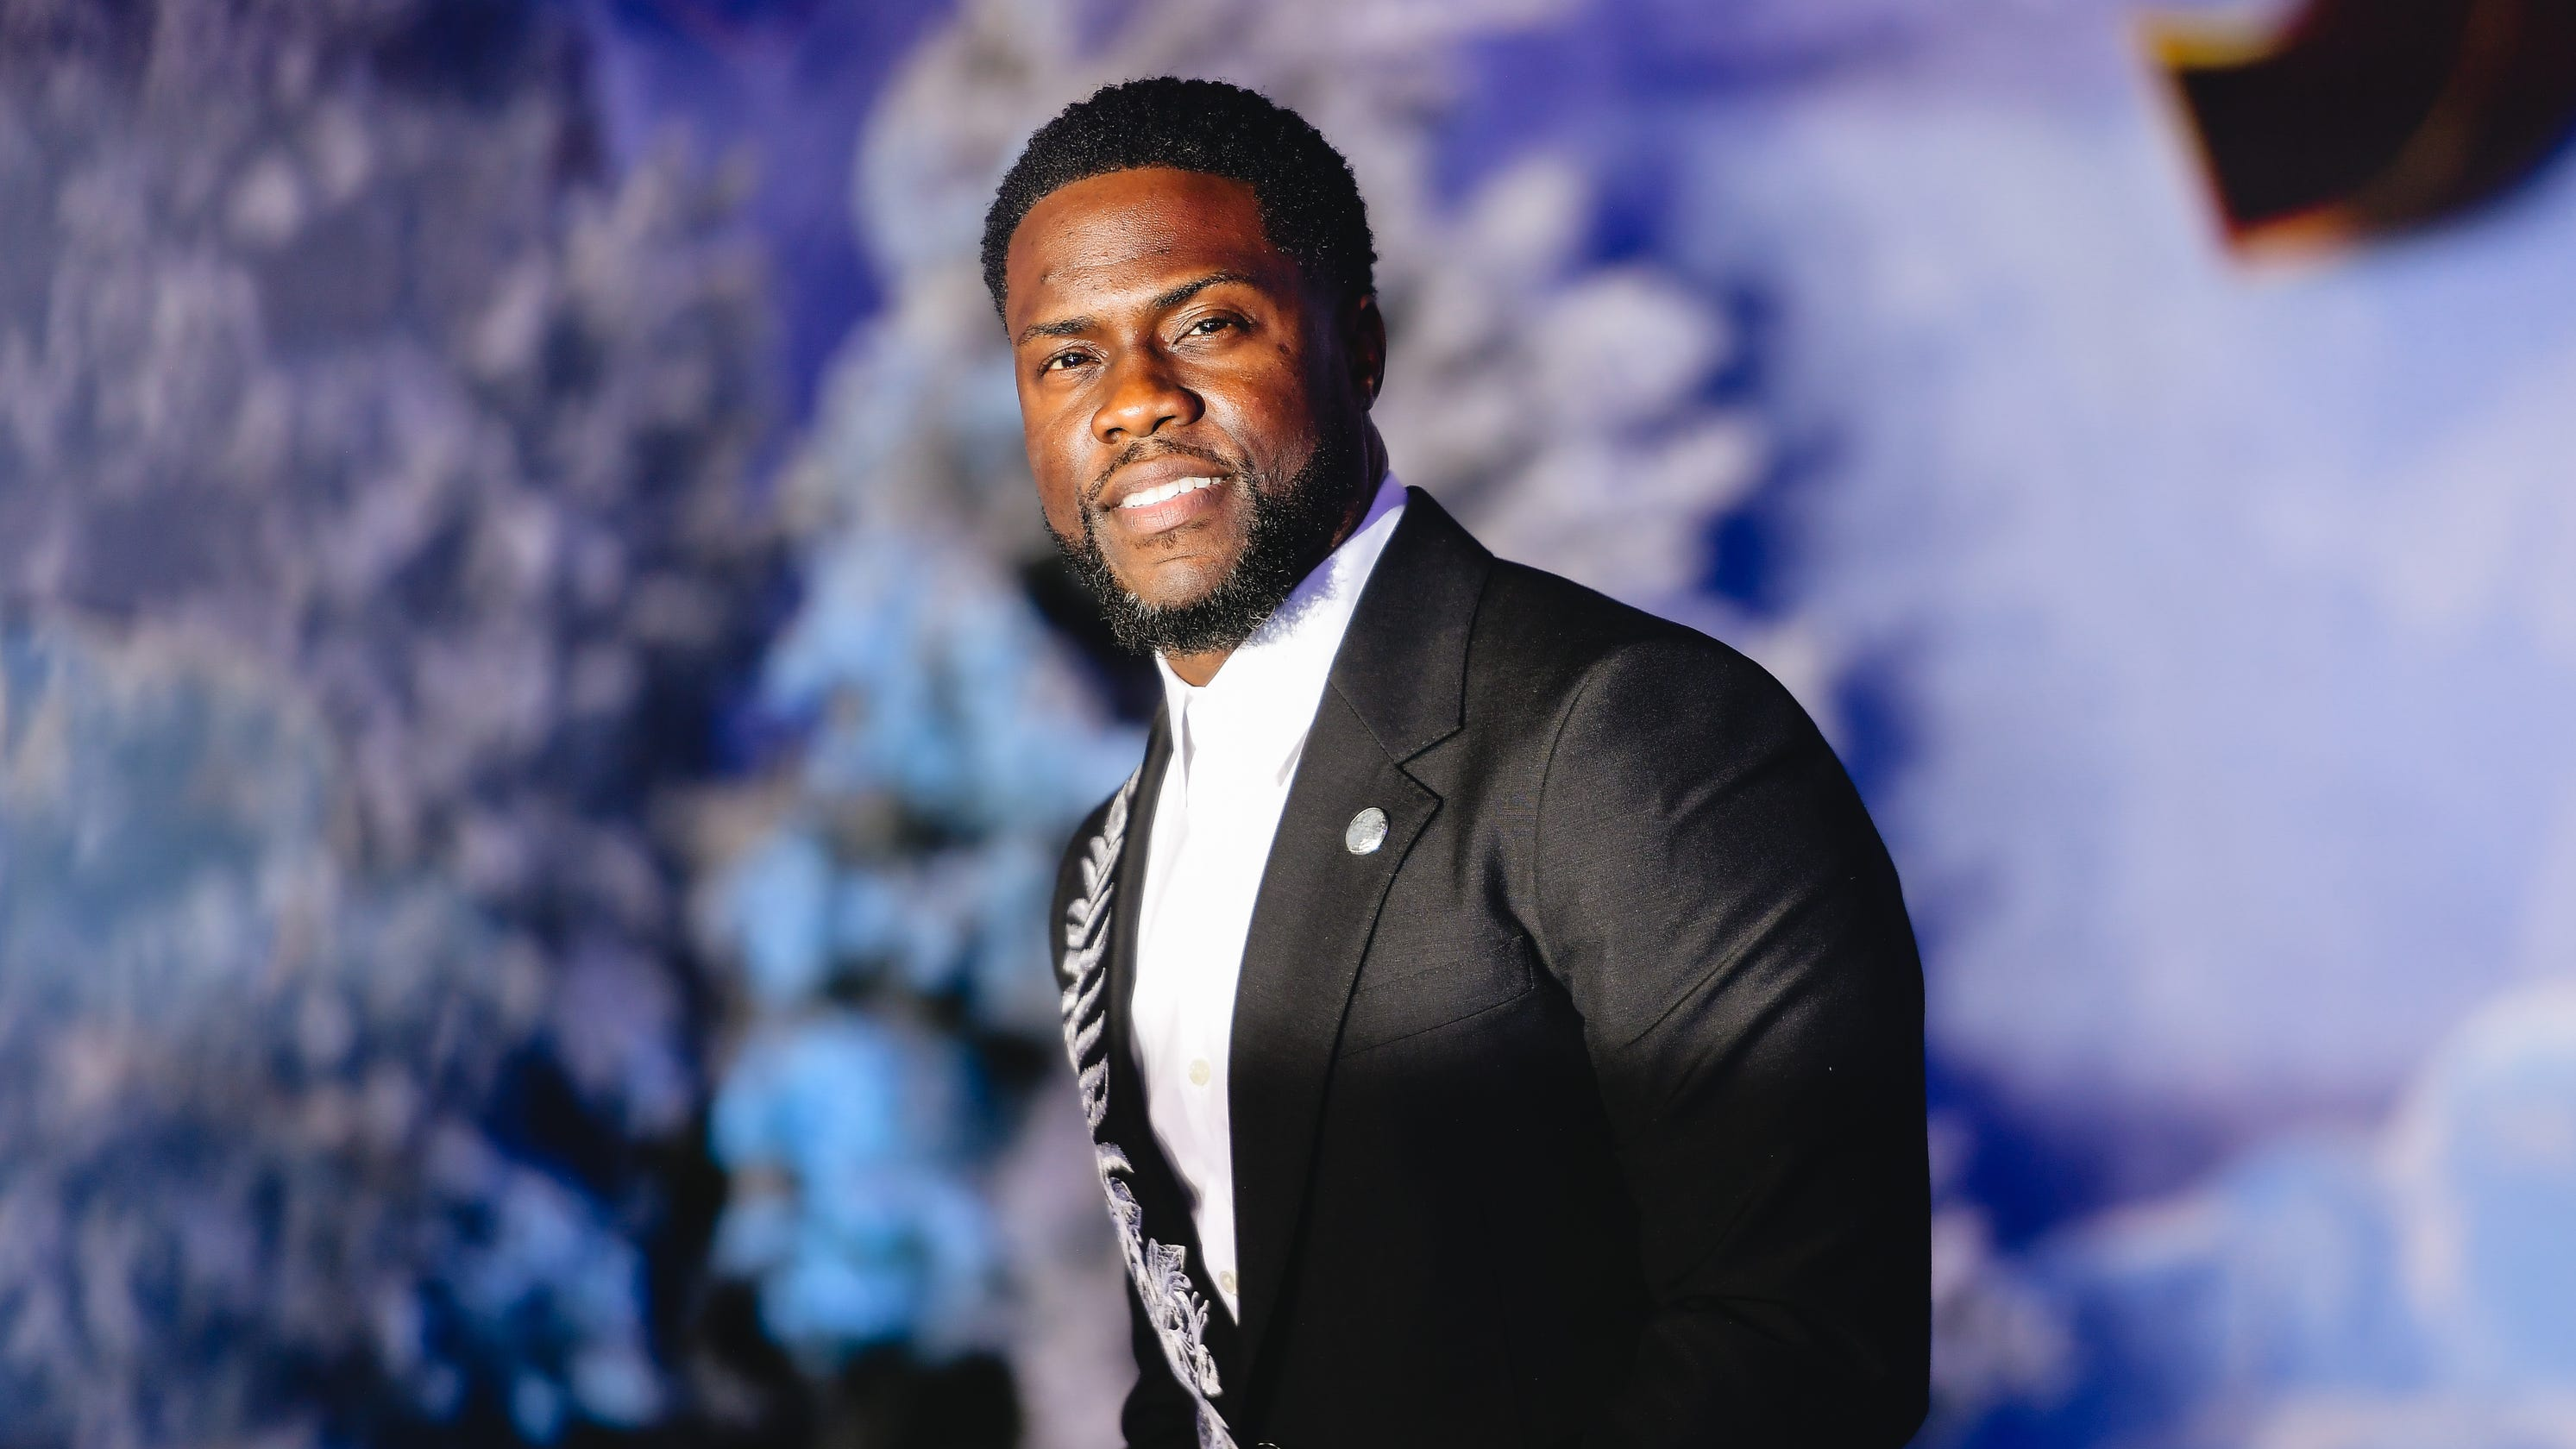 Kevin Hart's personal shopper charged with stealing over $1 million from comedian - USA TODAY